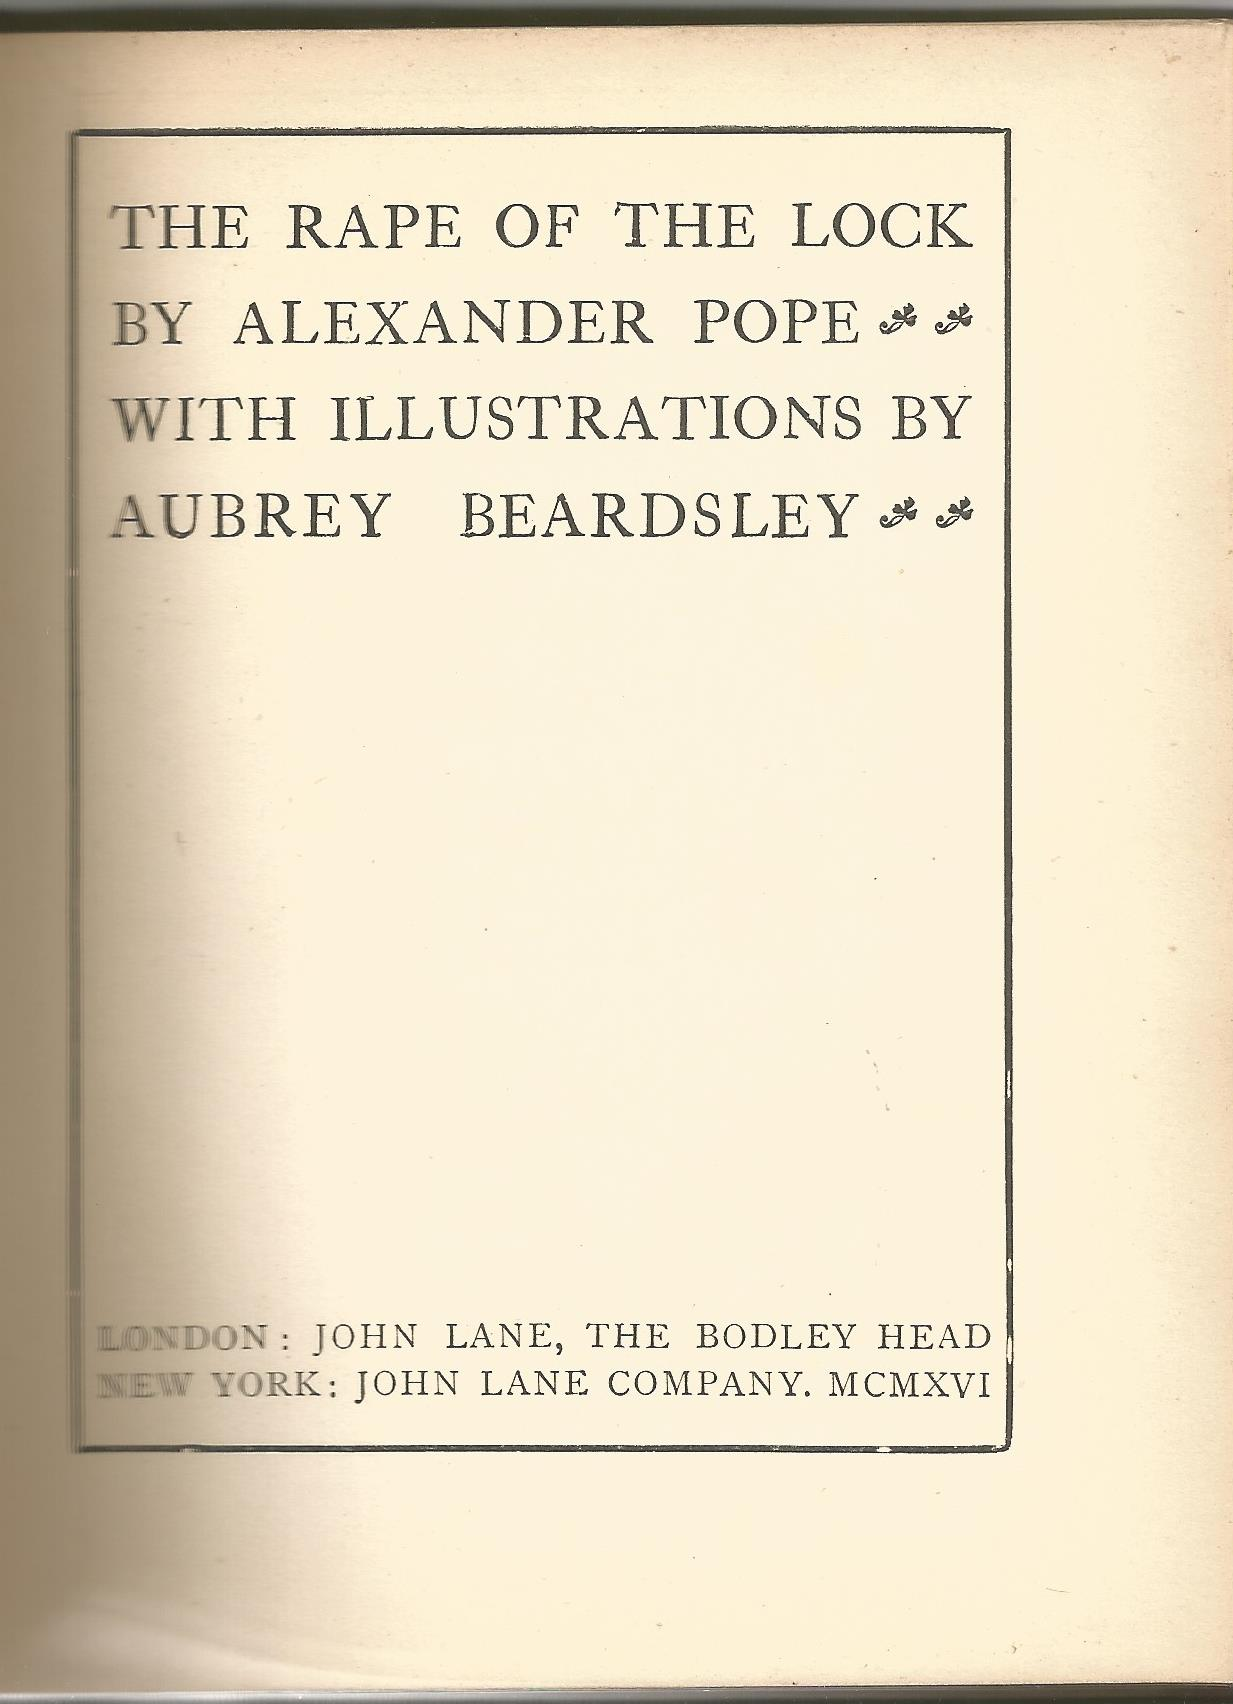 Hardback Book The Rape of The Lock by Alexander Pope Illustrations by Aubrey Beardsley 1916 Second - Image 2 of 3